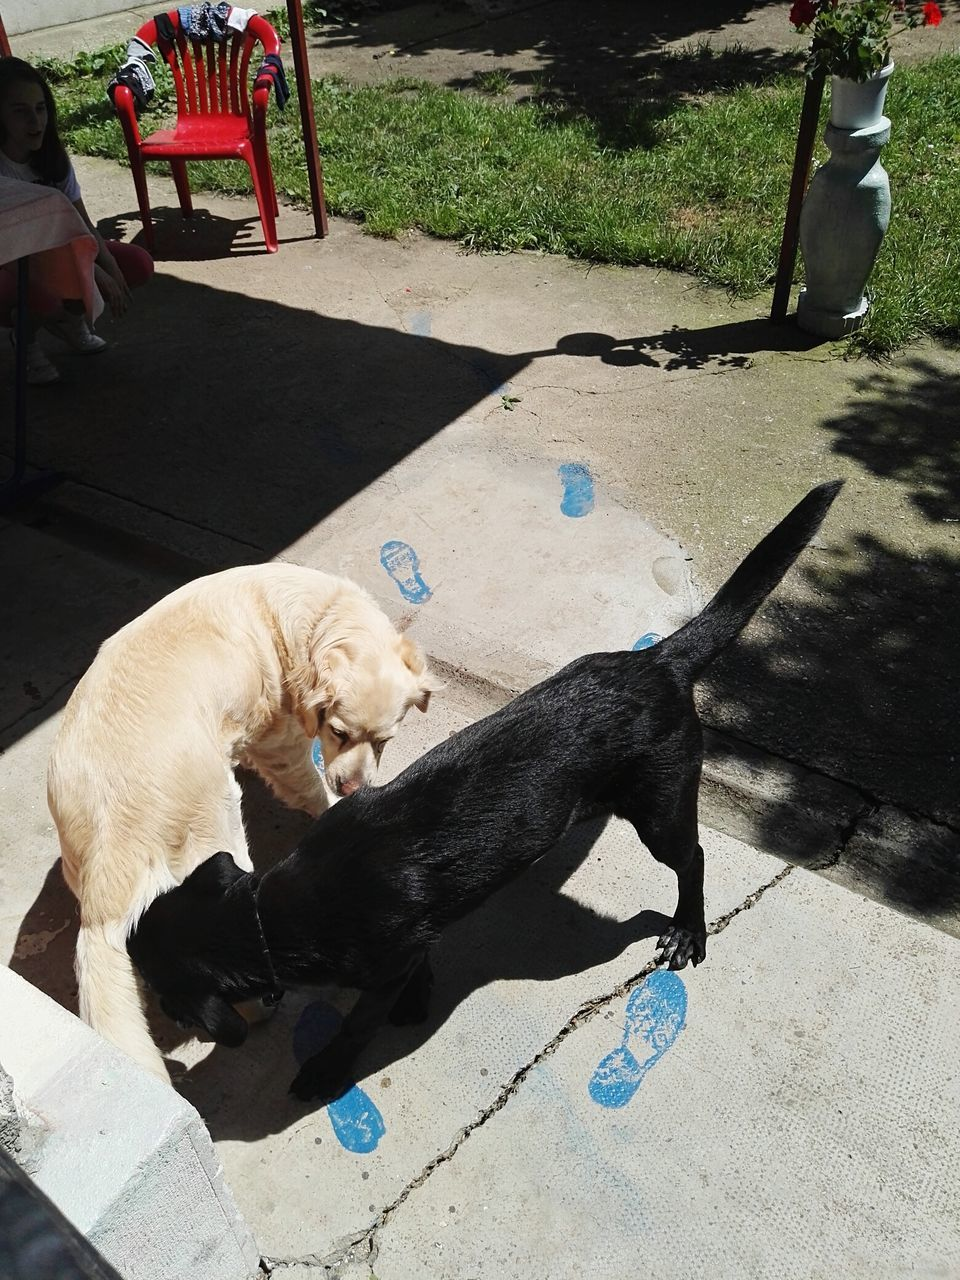 dog, pets, domestic animals, mammal, animal themes, outdoors, day, high angle view, sunlight, shadow, no people, one animal